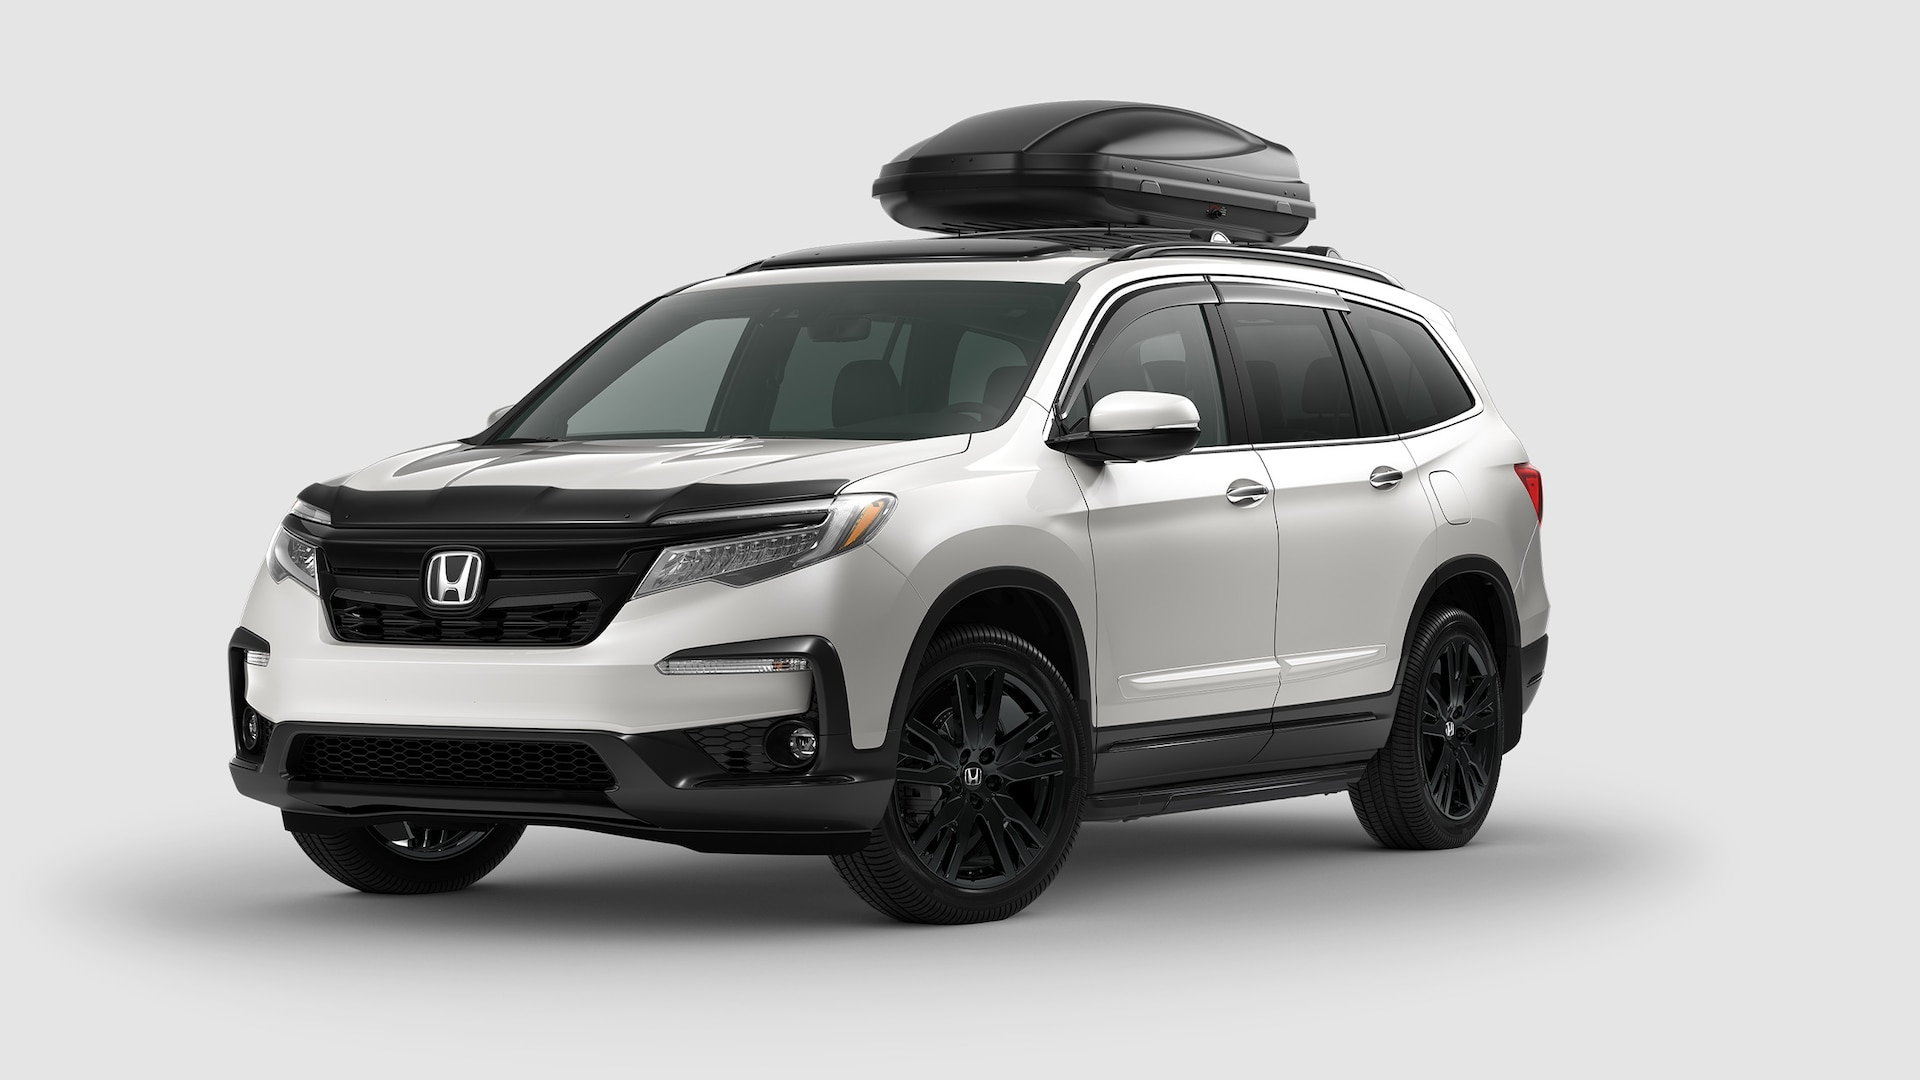 Front 3/4 driver's side view of 2020 Honda Pilot Elite in White Diamond Pearl with Honda Genuine Accessories on roof rack.